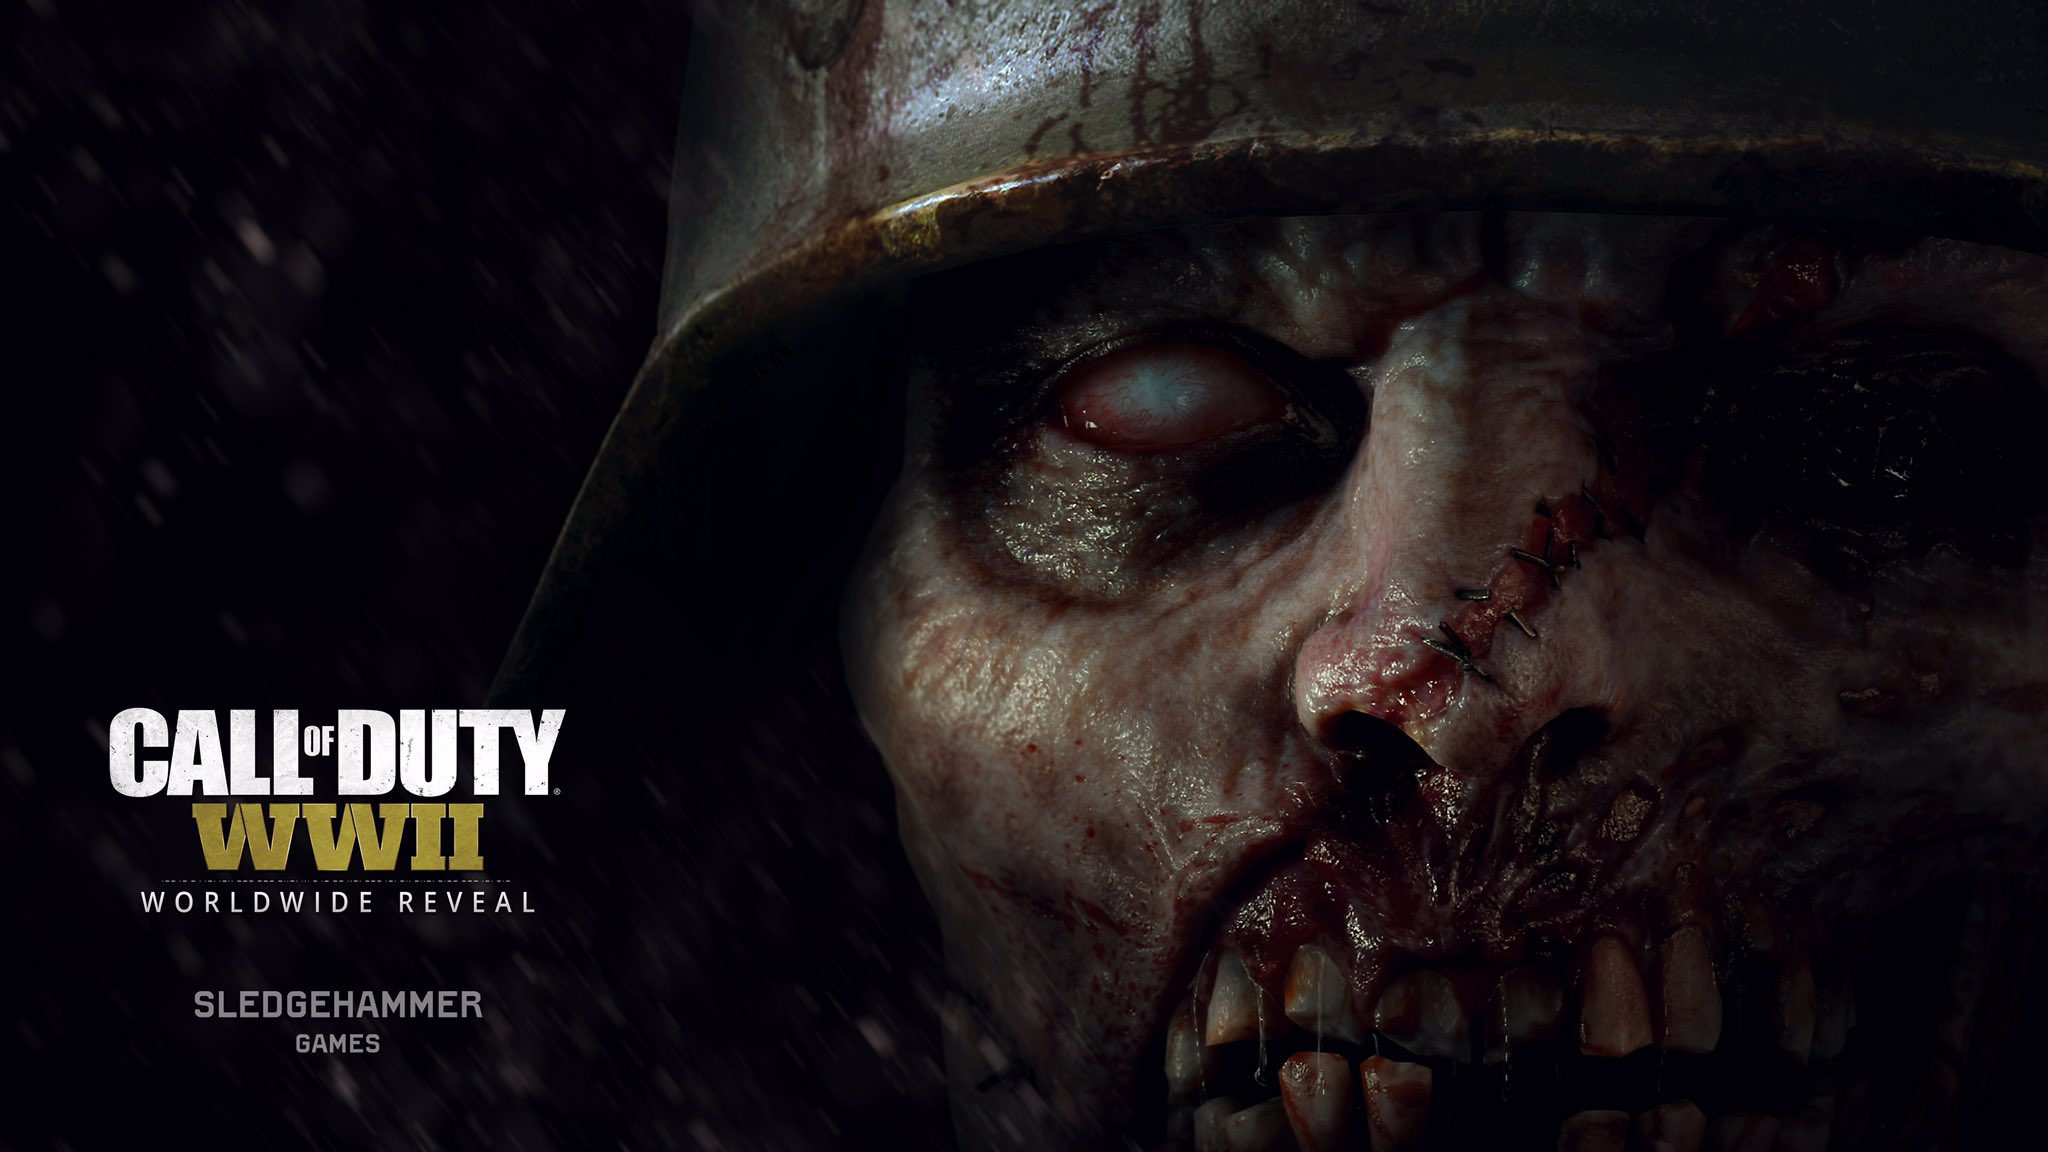 Call-of-Duty-WWII-Nazi-Zombies